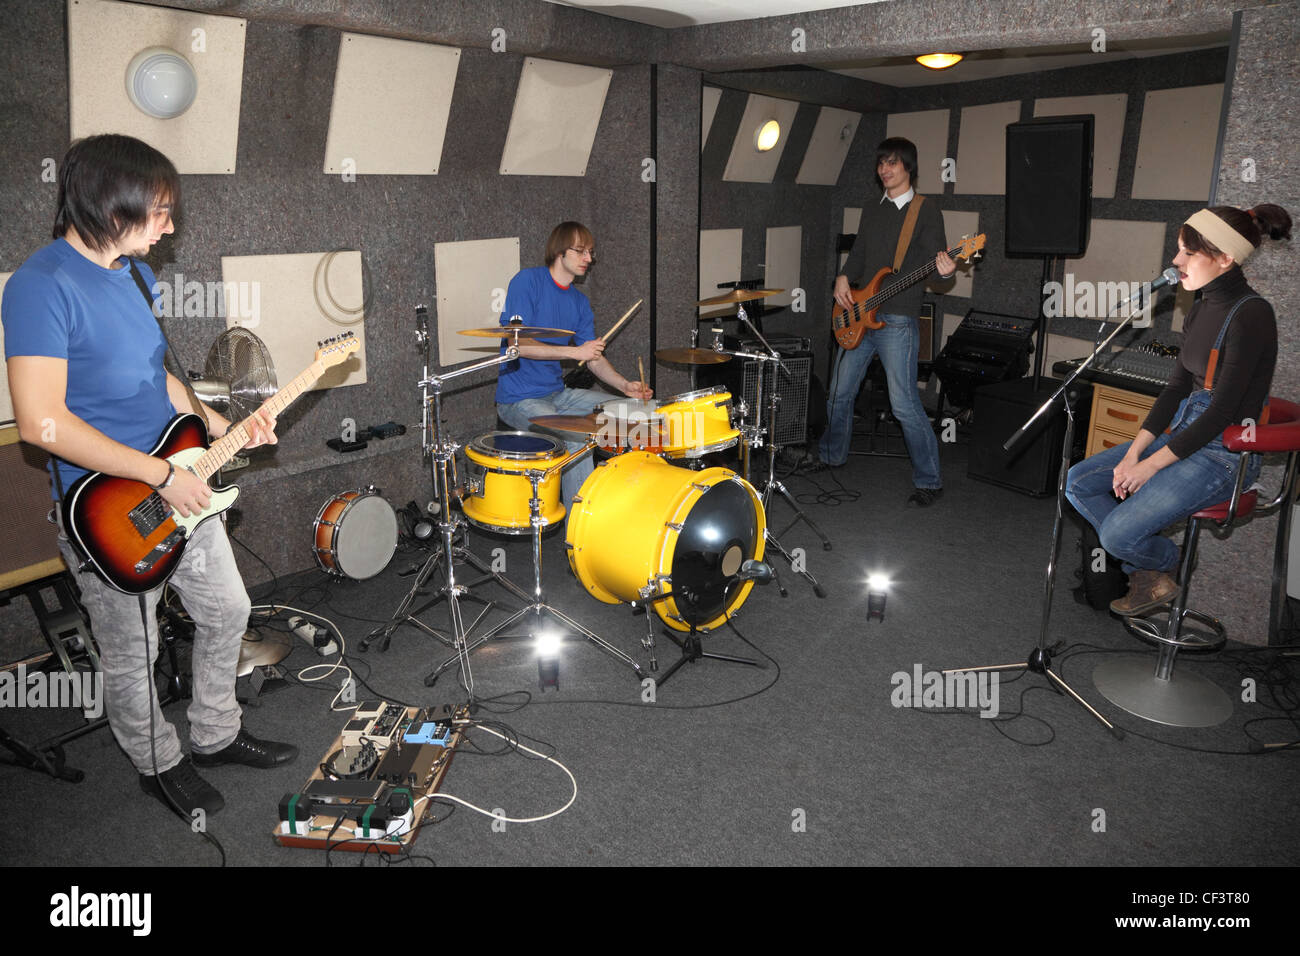 a rock band. vocalist girl, two musicians with electro guitars and one drummer working in studio. flashes in center - Stock Image